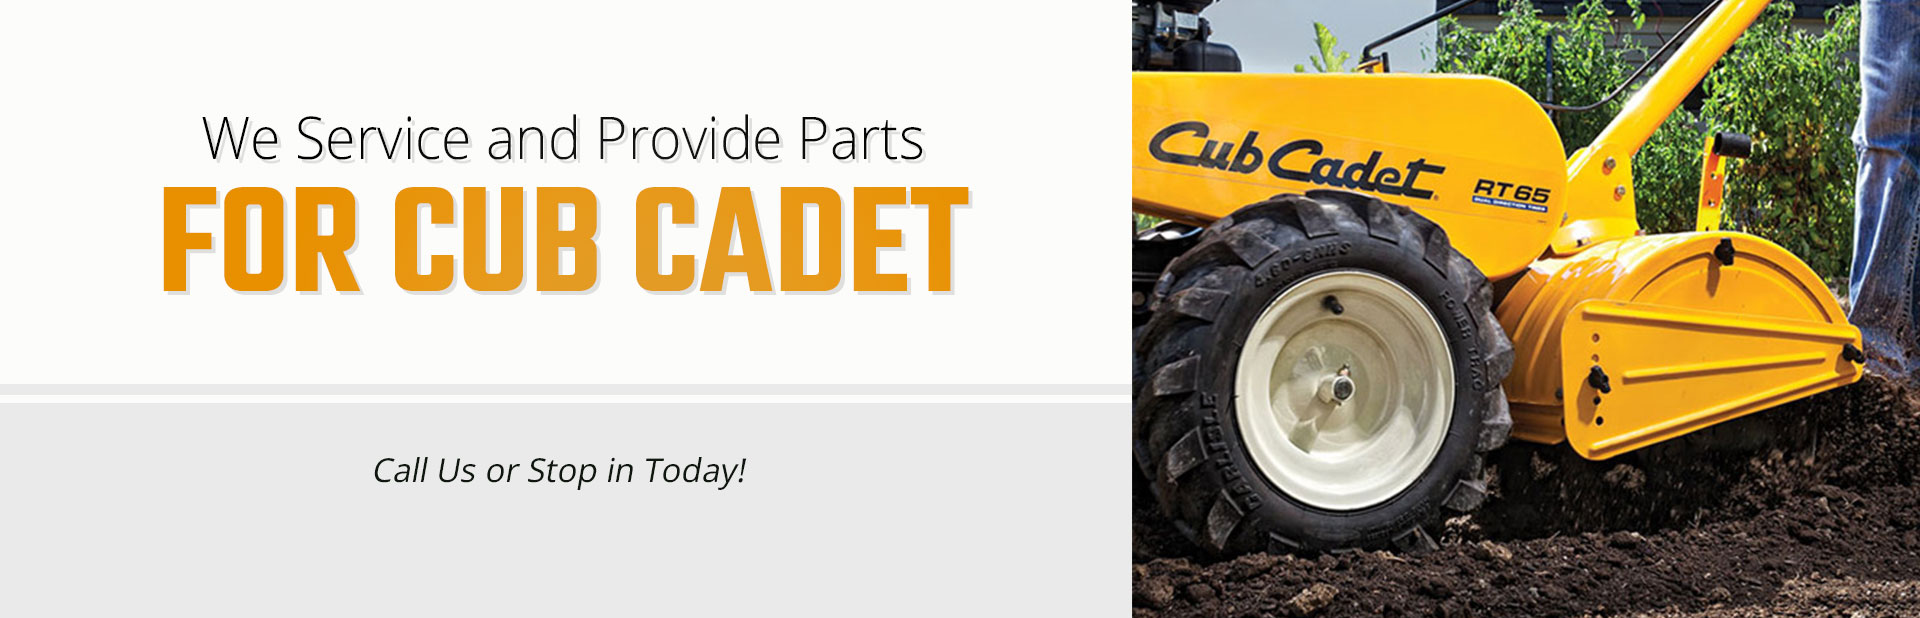 We service and provide parts for Cub Cadet. Call (315) 597-5121 or stop in today!